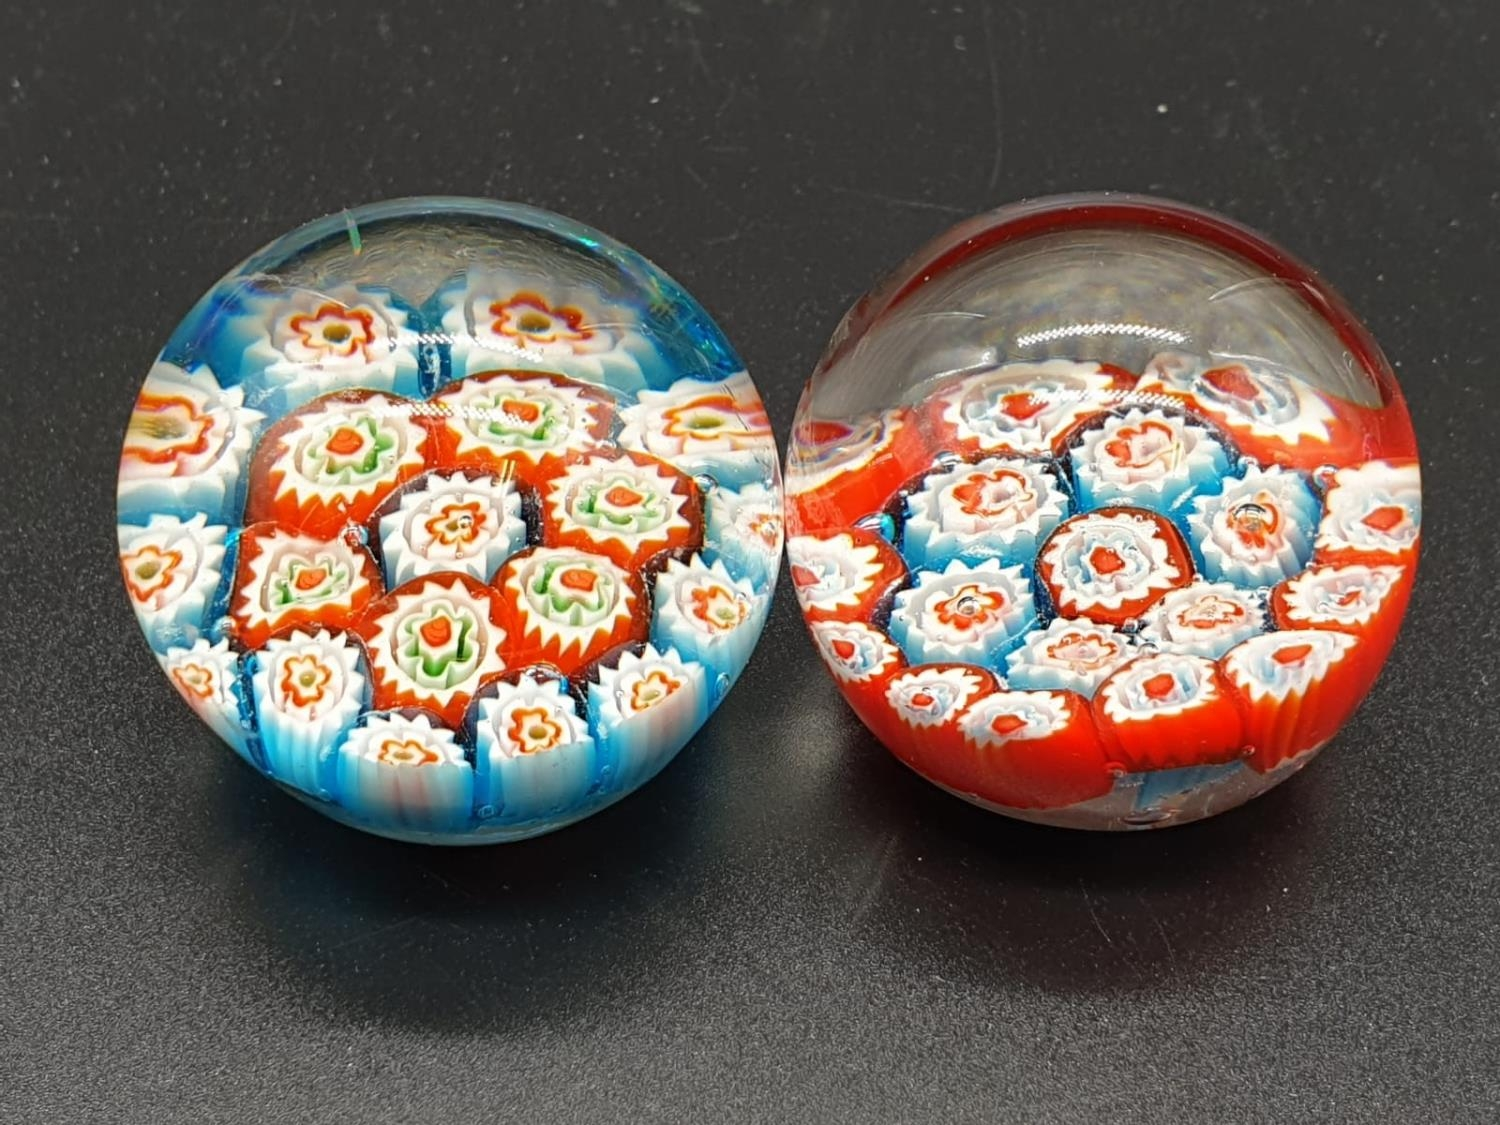 Collection of 6 paperweights, 4 are Millefiori styled, the other two are Caithness paperweights, the - Image 8 of 13